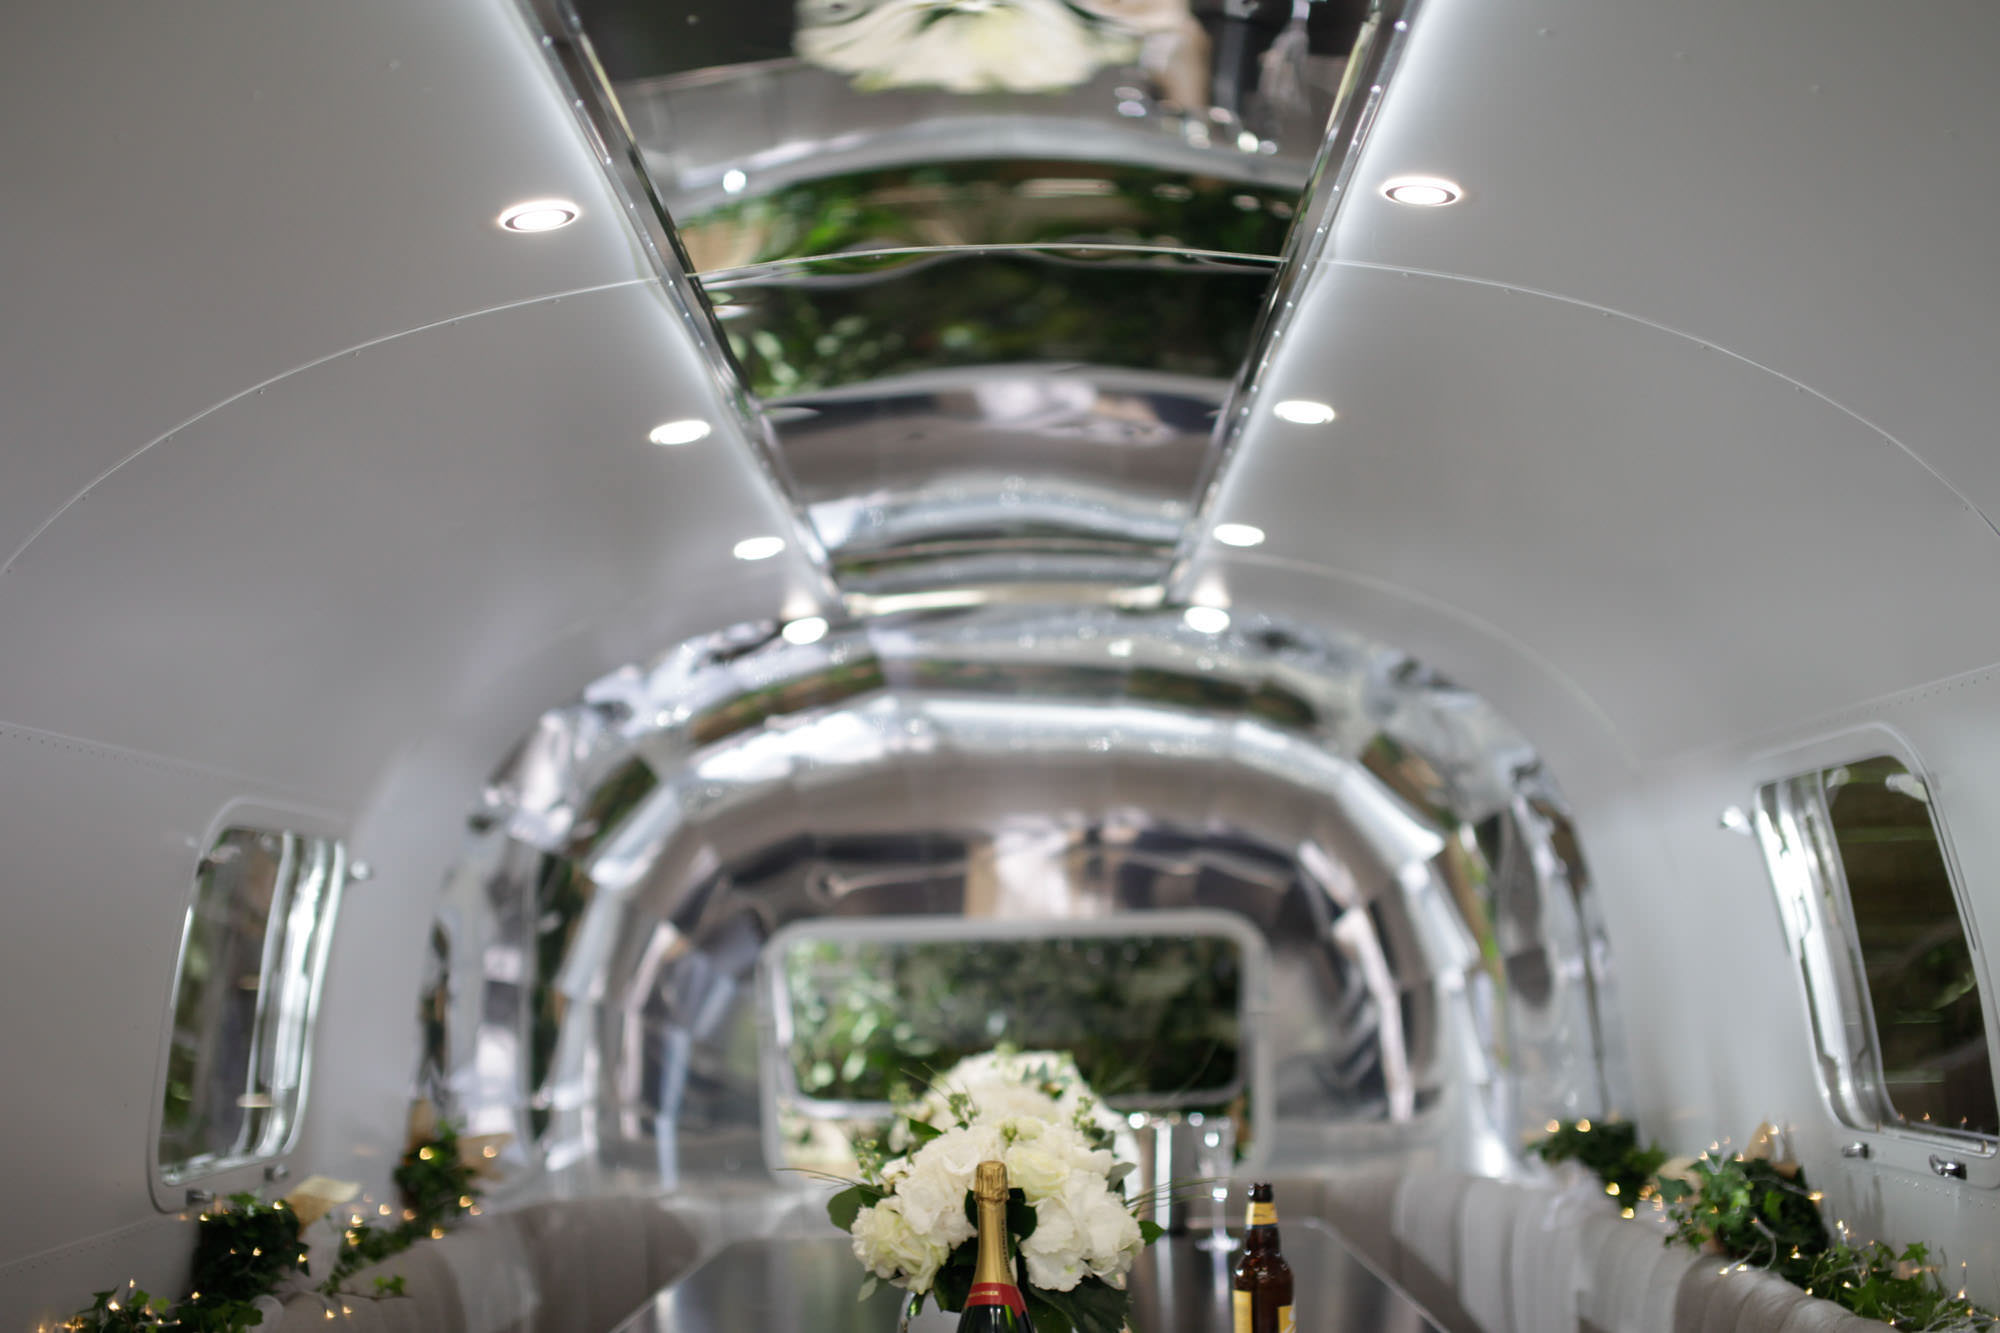 the Mobile Room - Hire a 1974 Airstream for your wedding